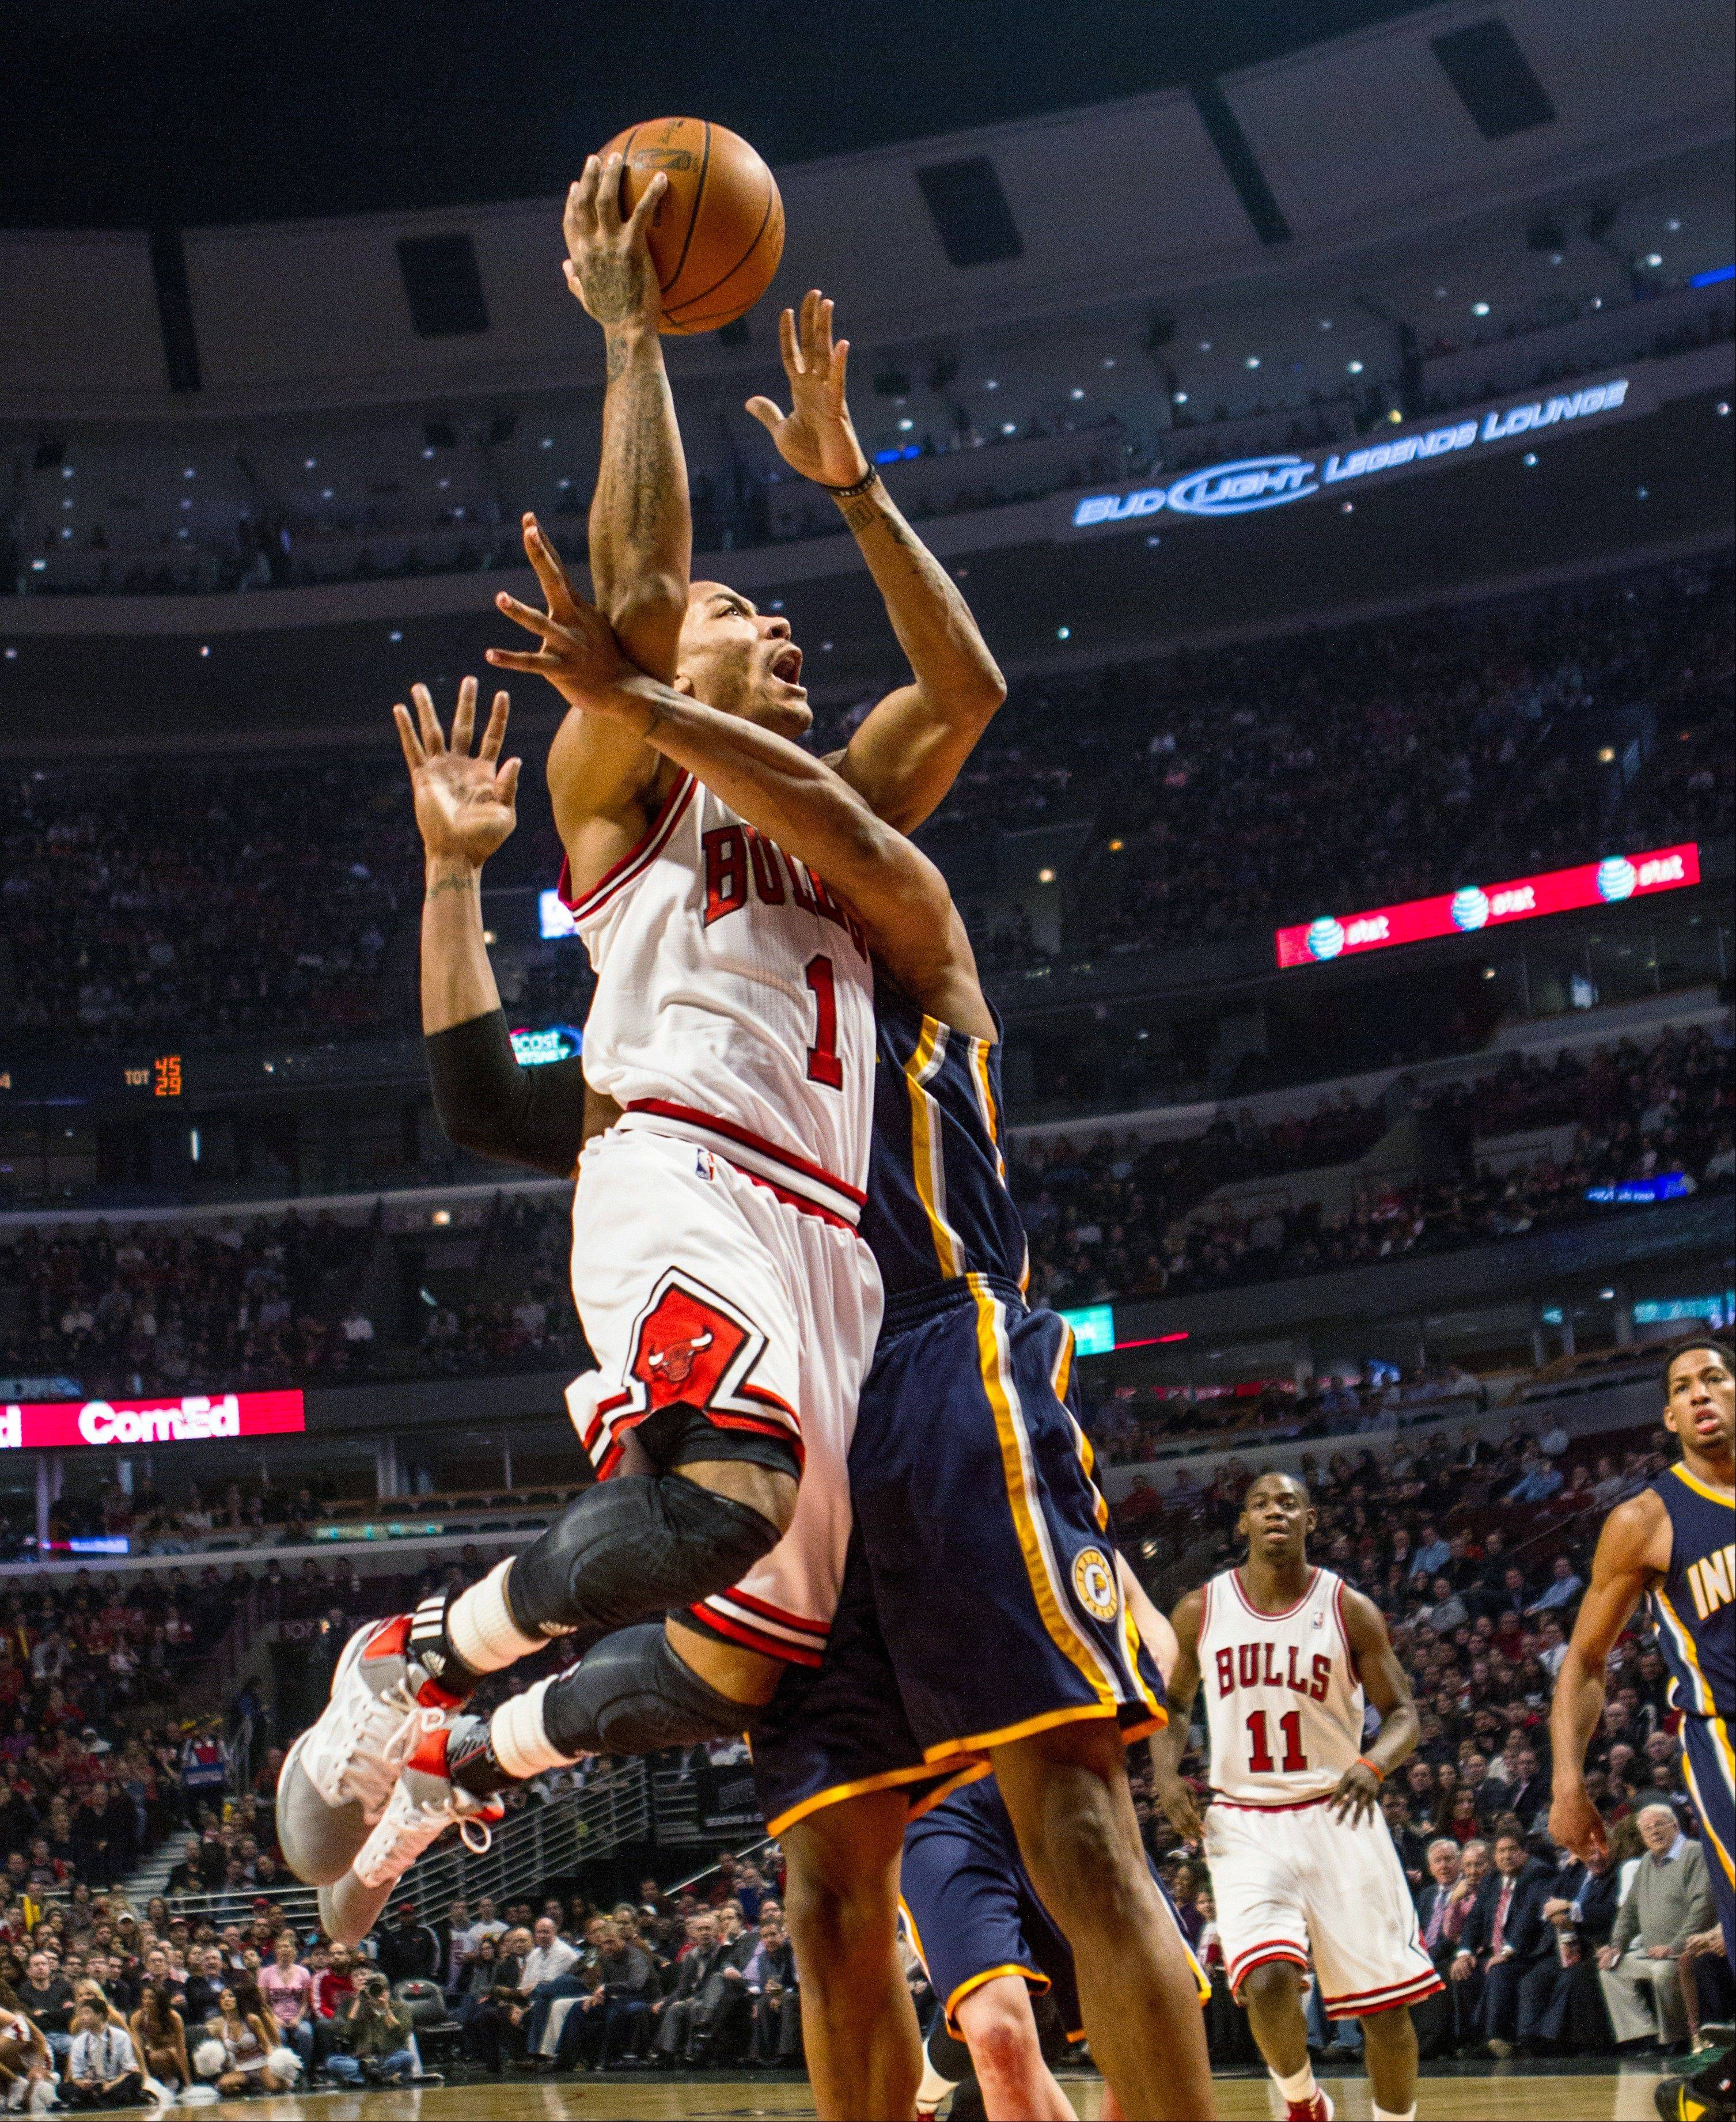 Derrick Rose goes to the basket as Indiana's David West defends during the first quarter of the Bulls' victory Monday at the United Center.